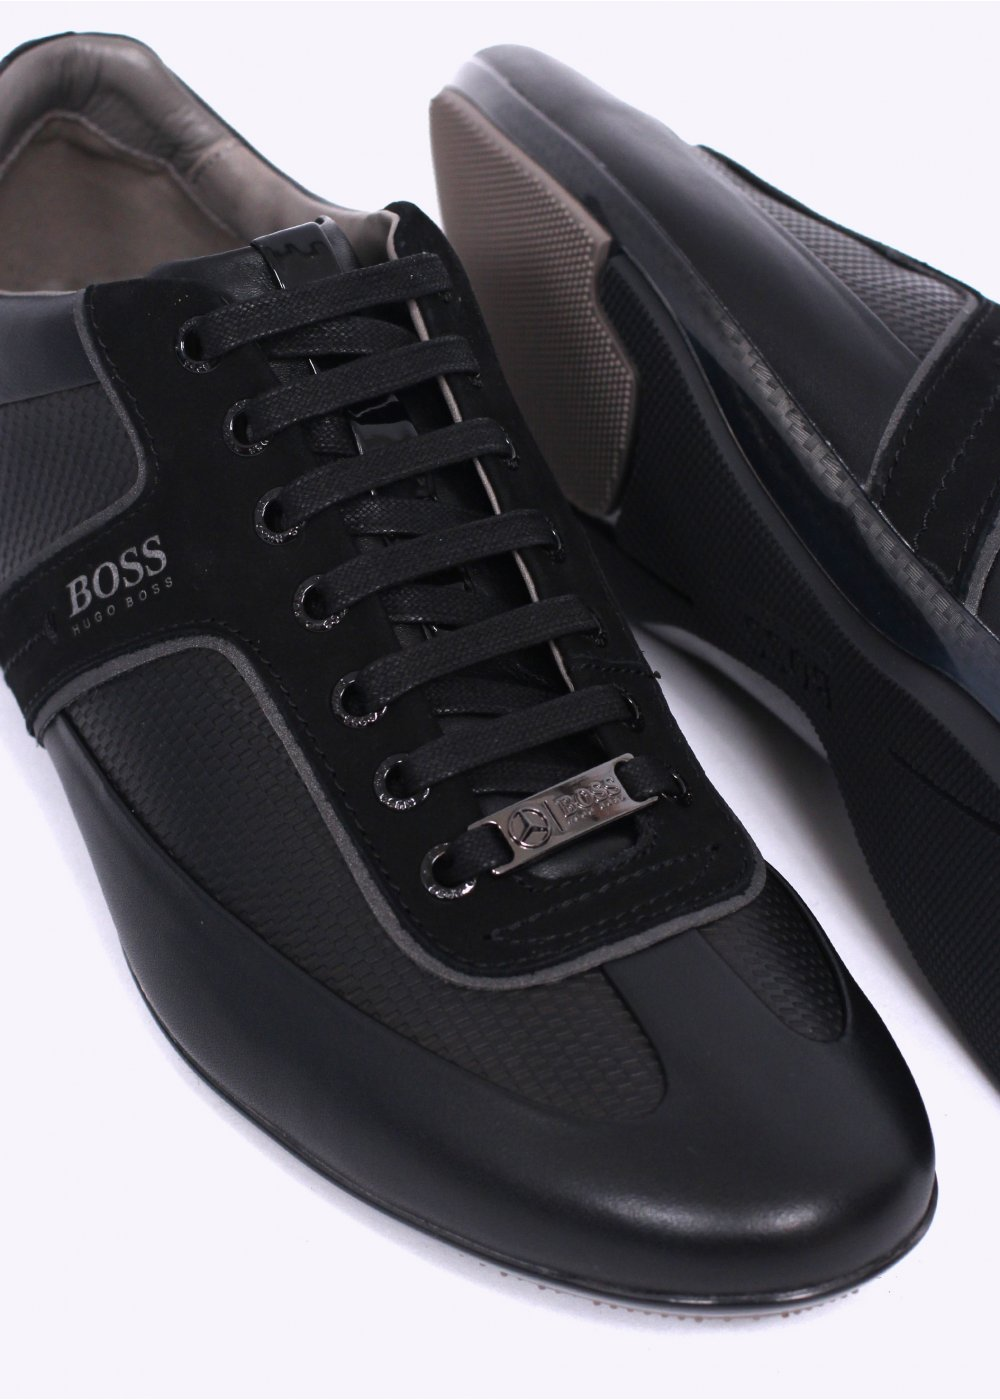 shoes hugo boss men 2016 sneakers. Black Bedroom Furniture Sets. Home Design Ideas